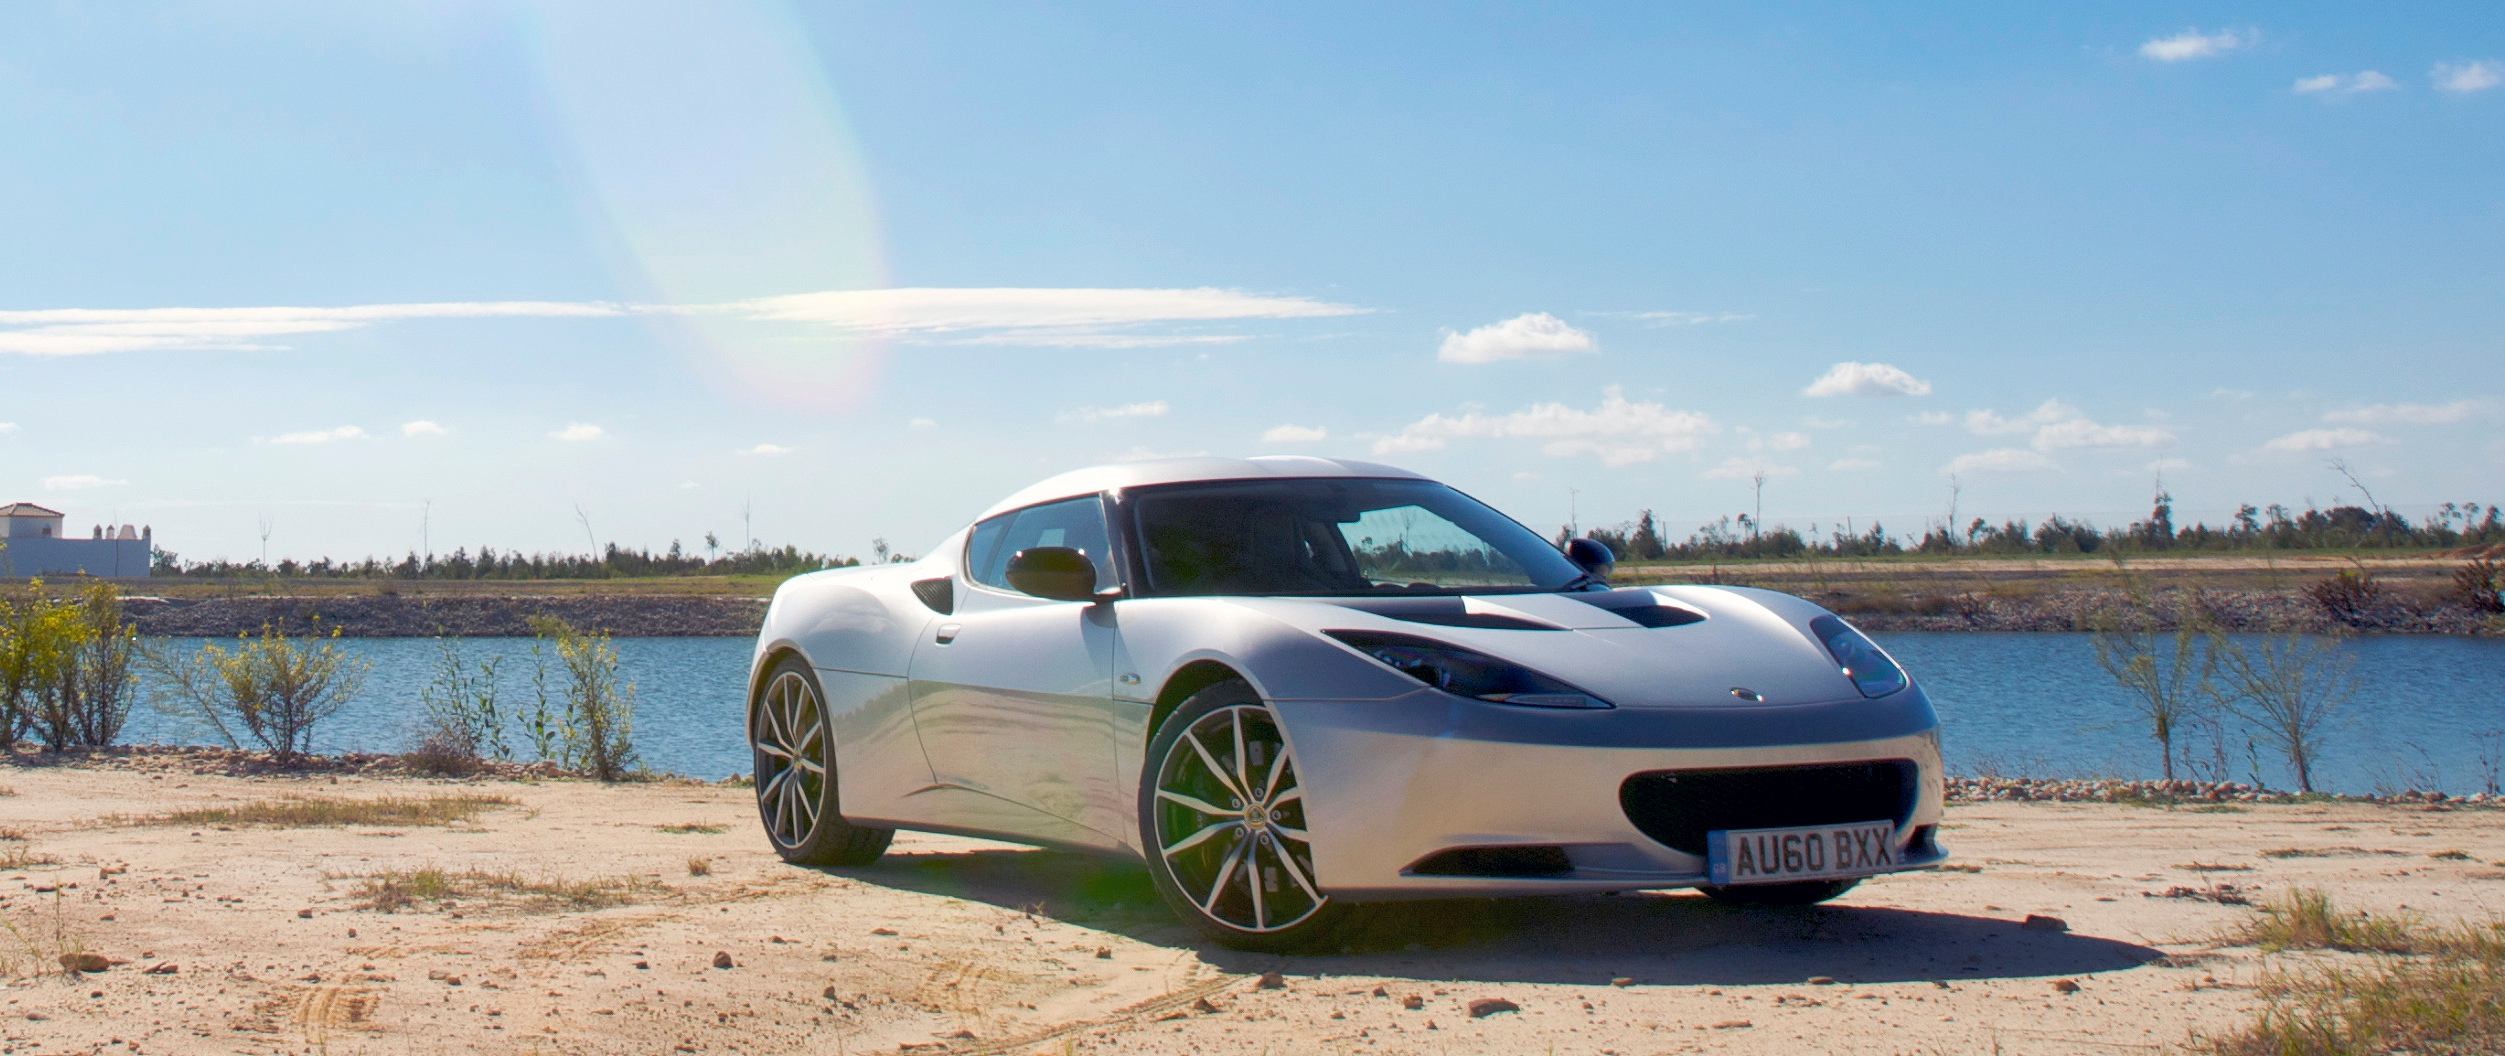 ... LOTUS Evora and Evora S - USA Buyers Guide - Specs, Colors and Options